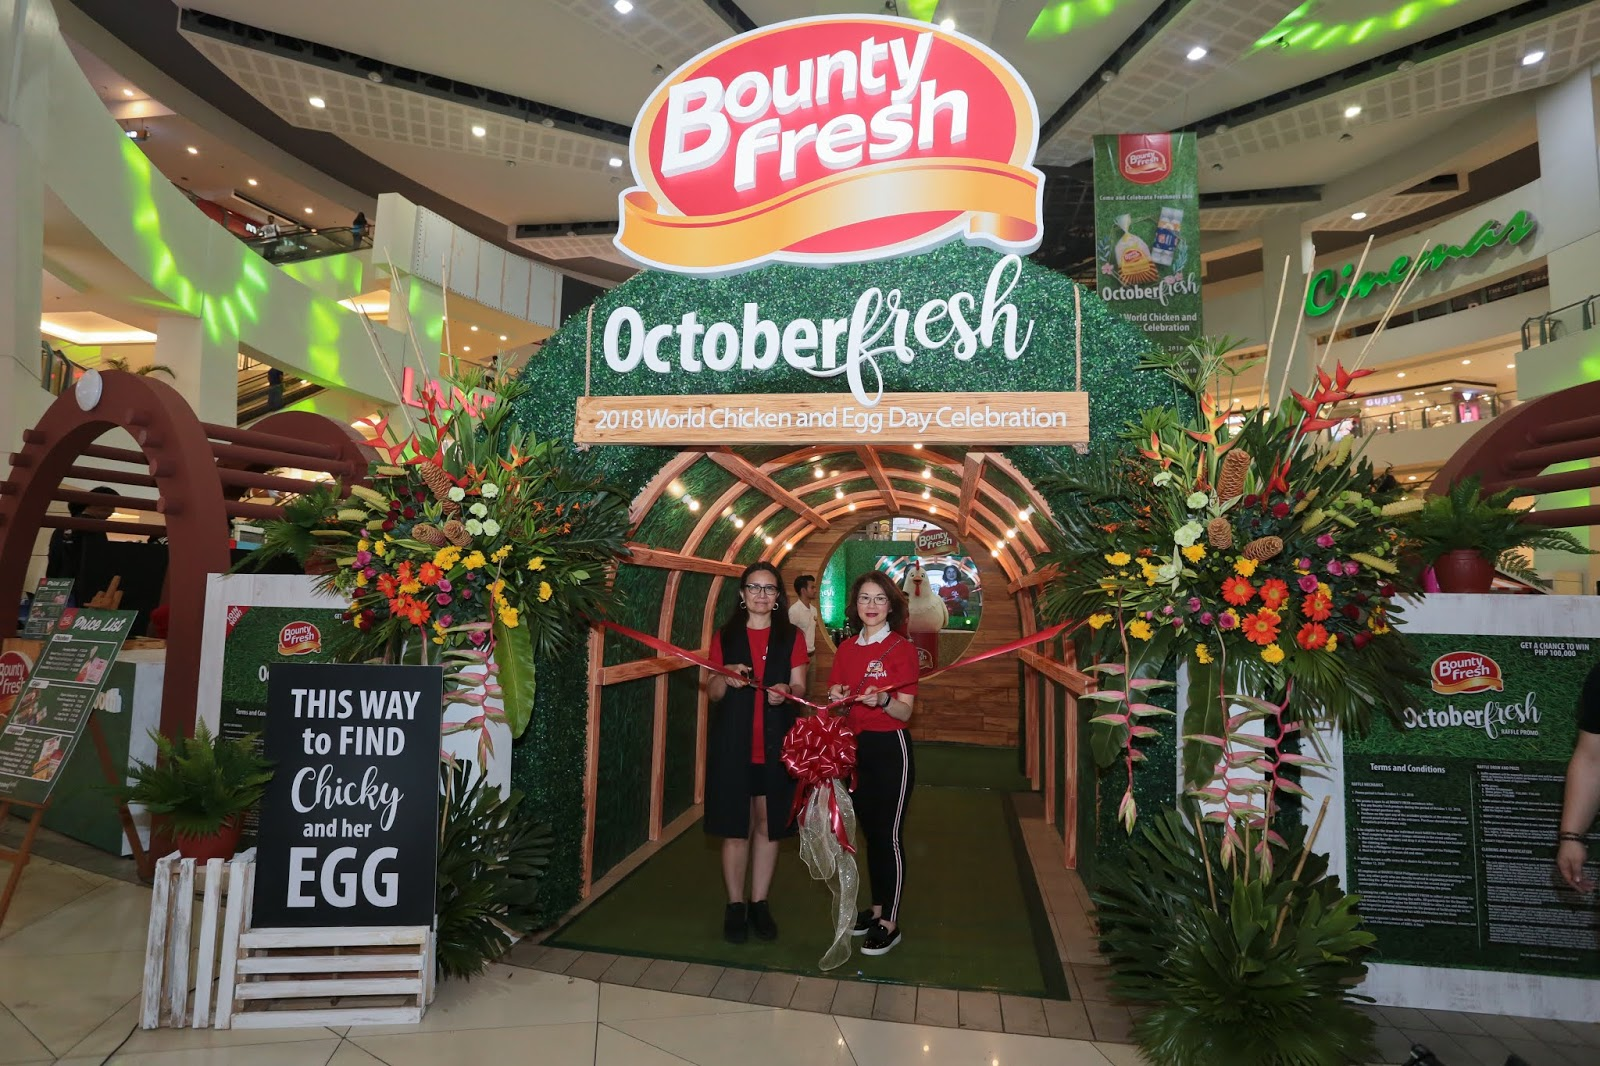 34ccaf2f1d0699 Bounty Fresh celebrates Octoberfresh 2018 World Chicken and Egg Day at  Trinoma